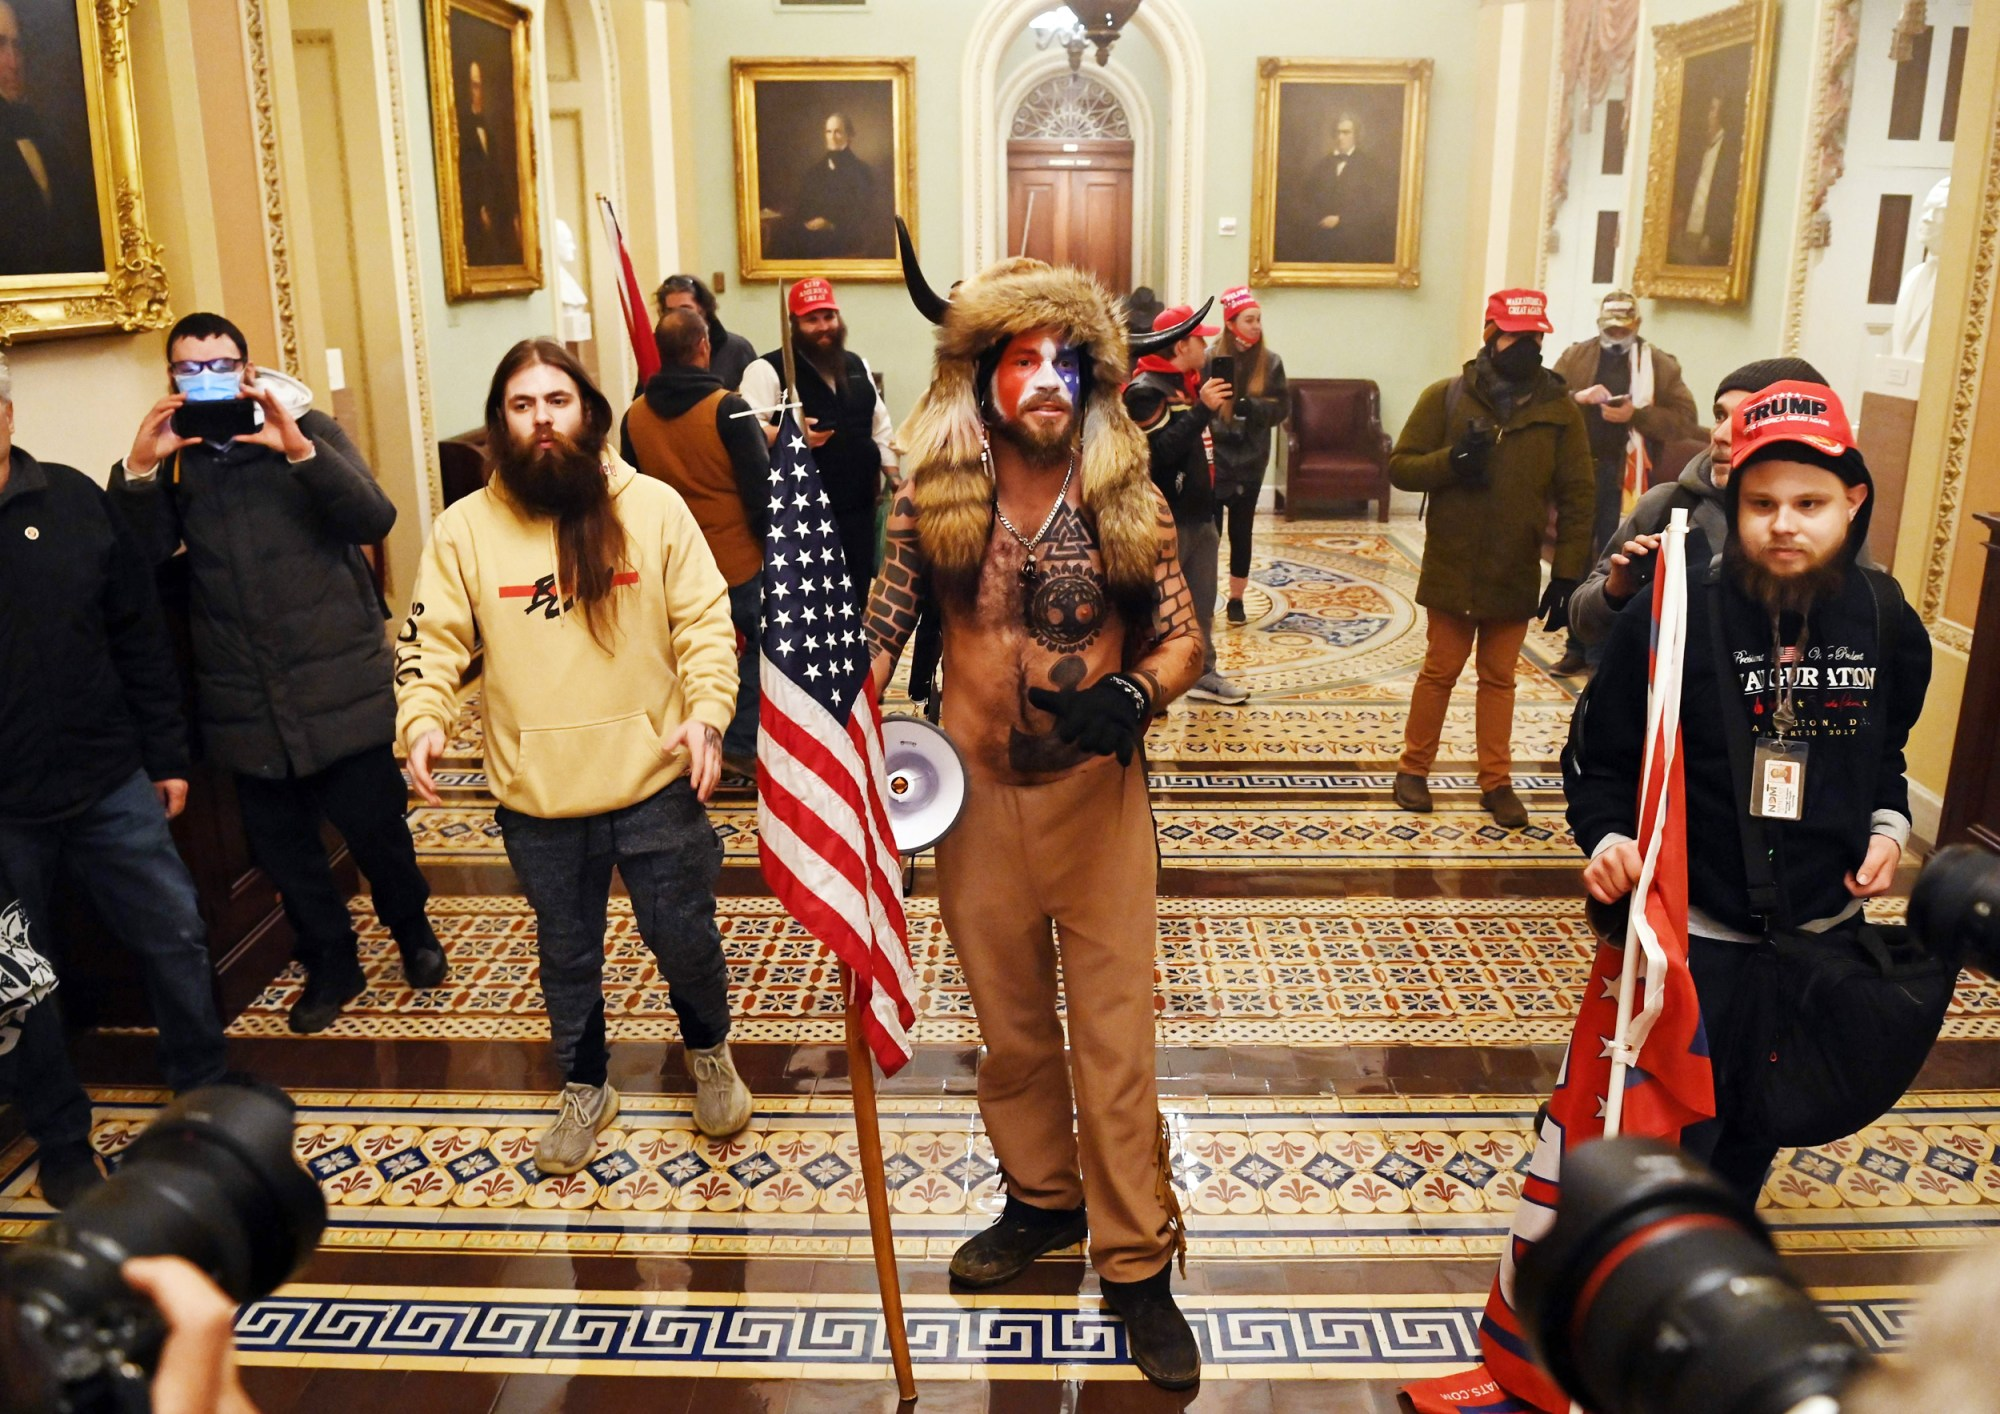 Trump-supporters pose for photos during US Capitol riot. January 6, 2021